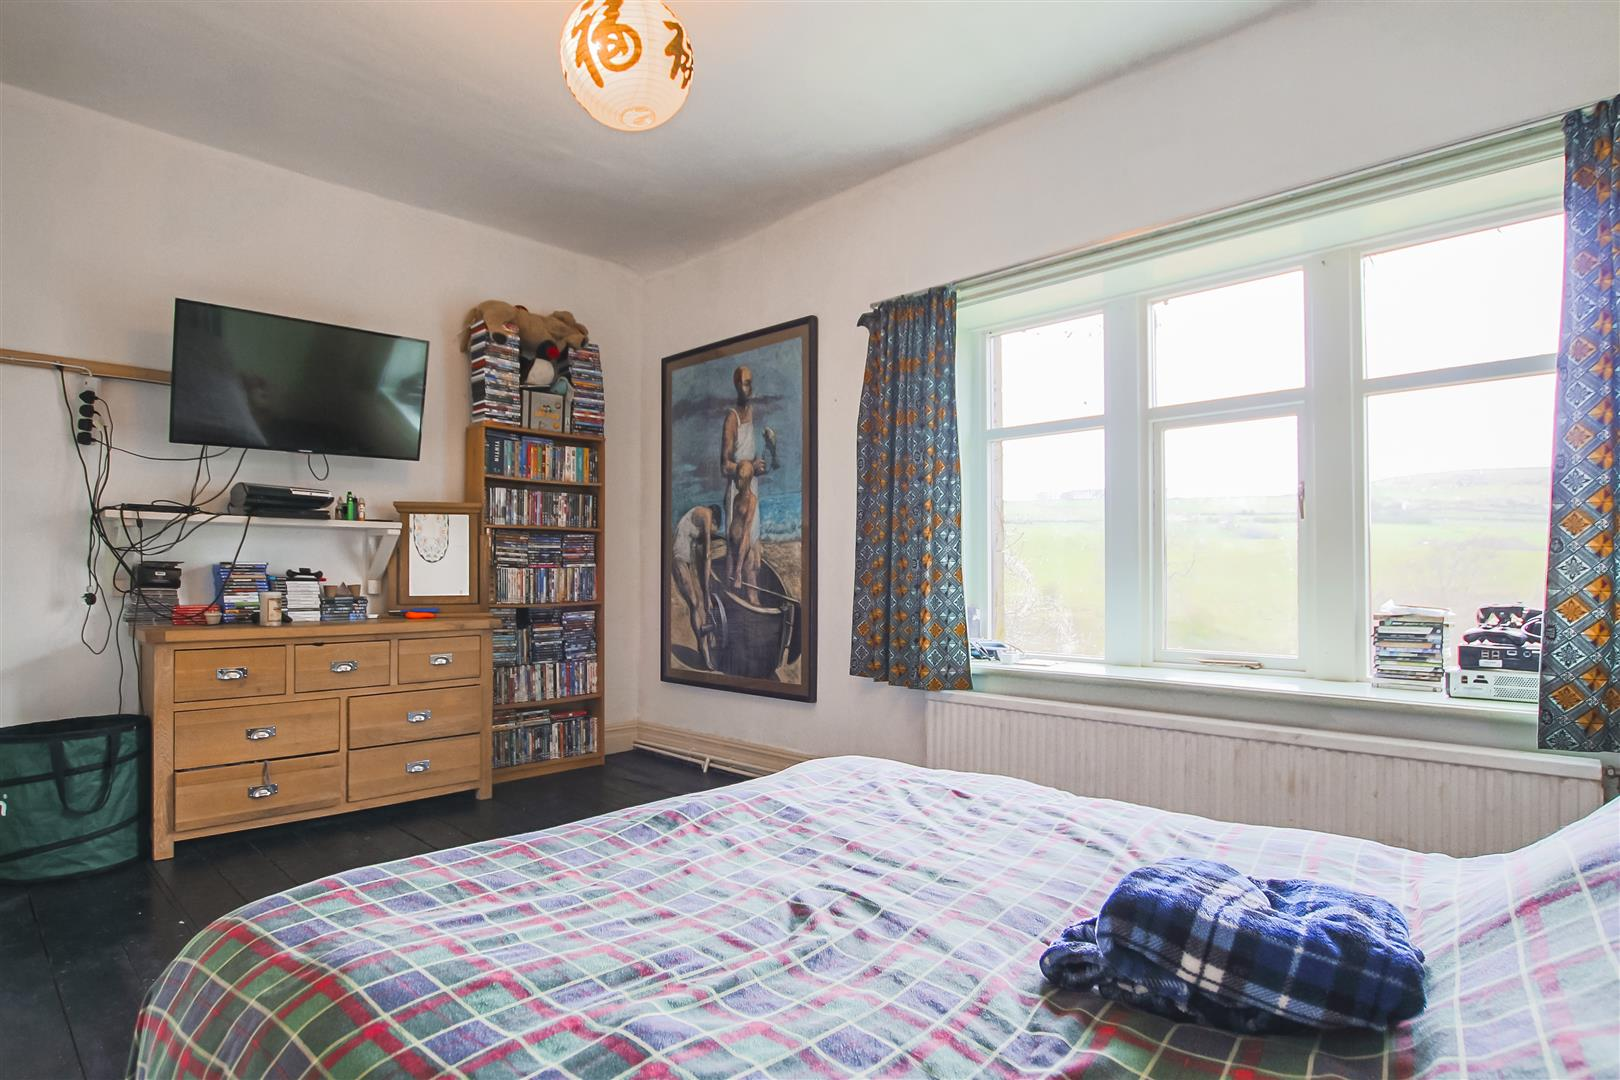 5 Bedroom Farmhouse For Sale - Image 55